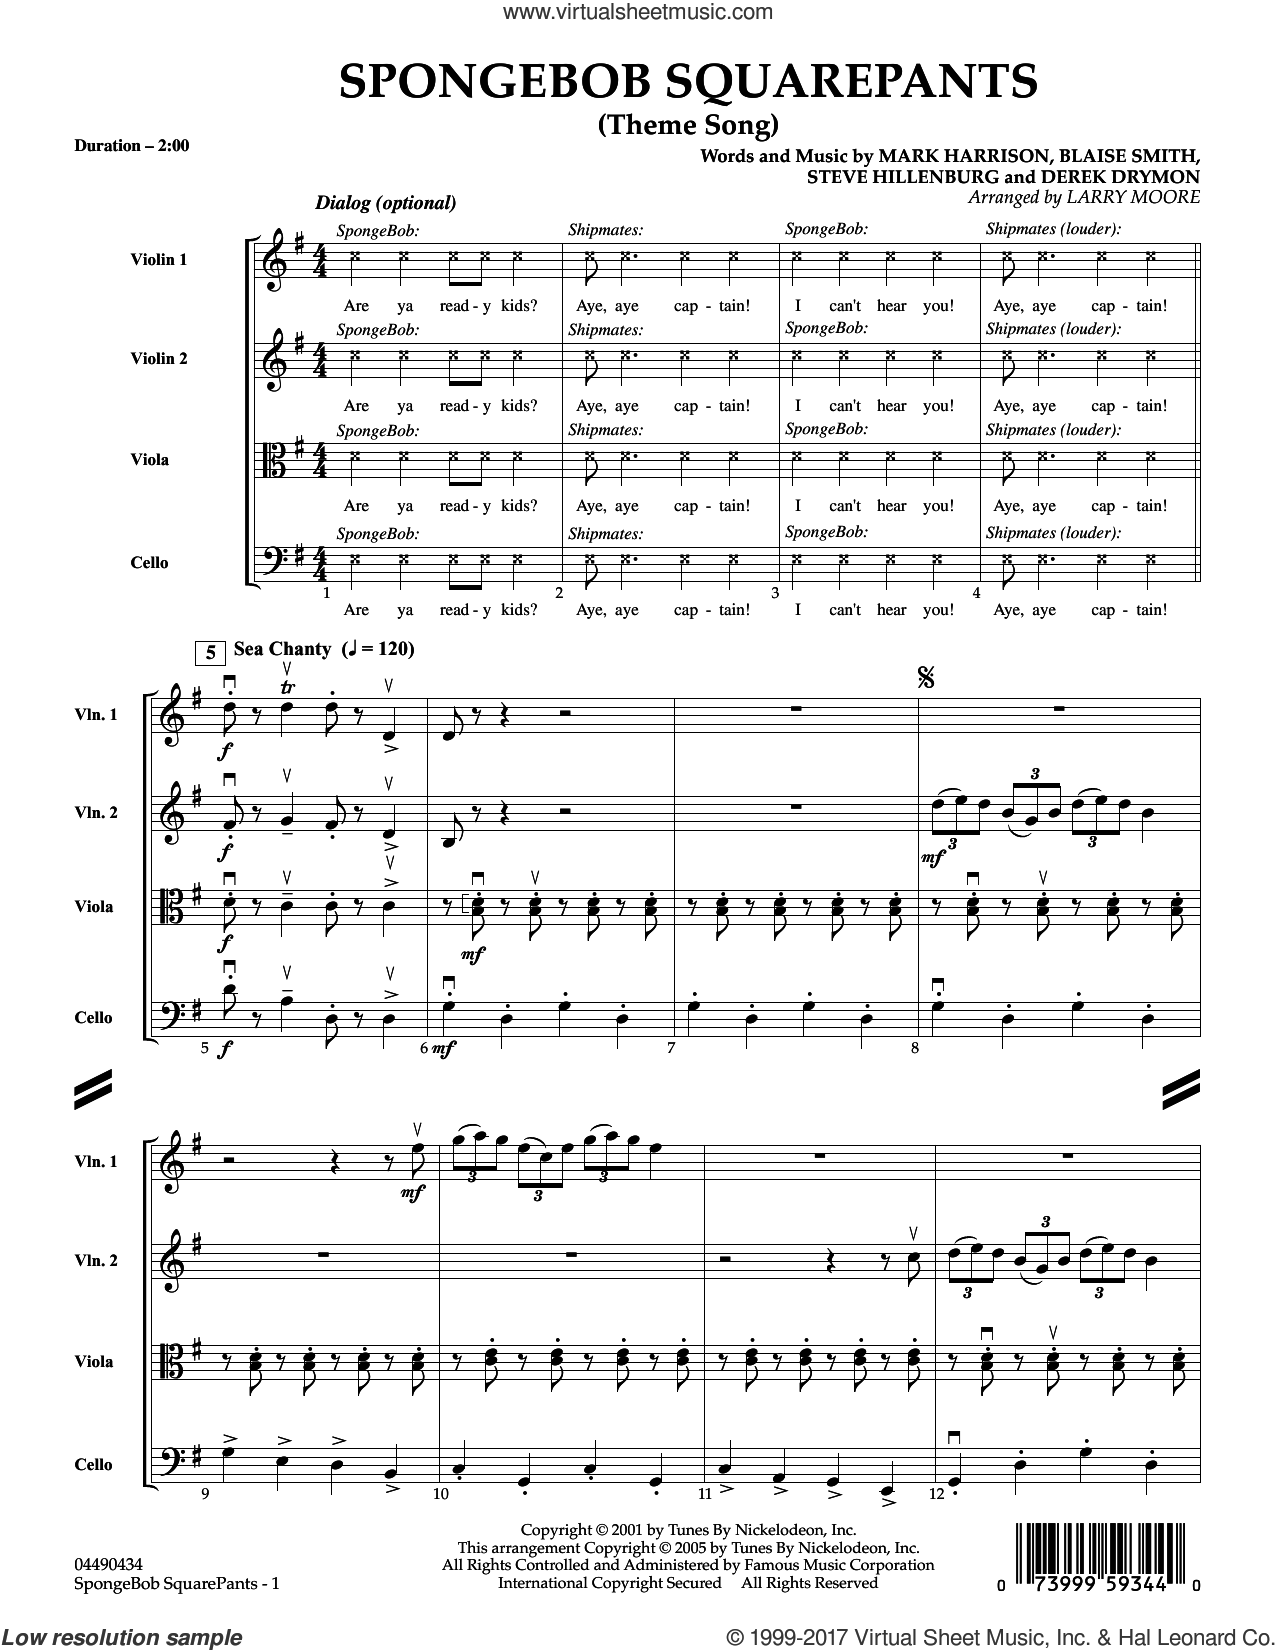 SpongeBob SquarePants (Theme Song) (COMPLETE) sheet music for orchestra (Strings) by Larry Moore, Blaise Smith, Mark Harrison and Steve Hillenburg, intermediate orchestra. Score Image Preview.